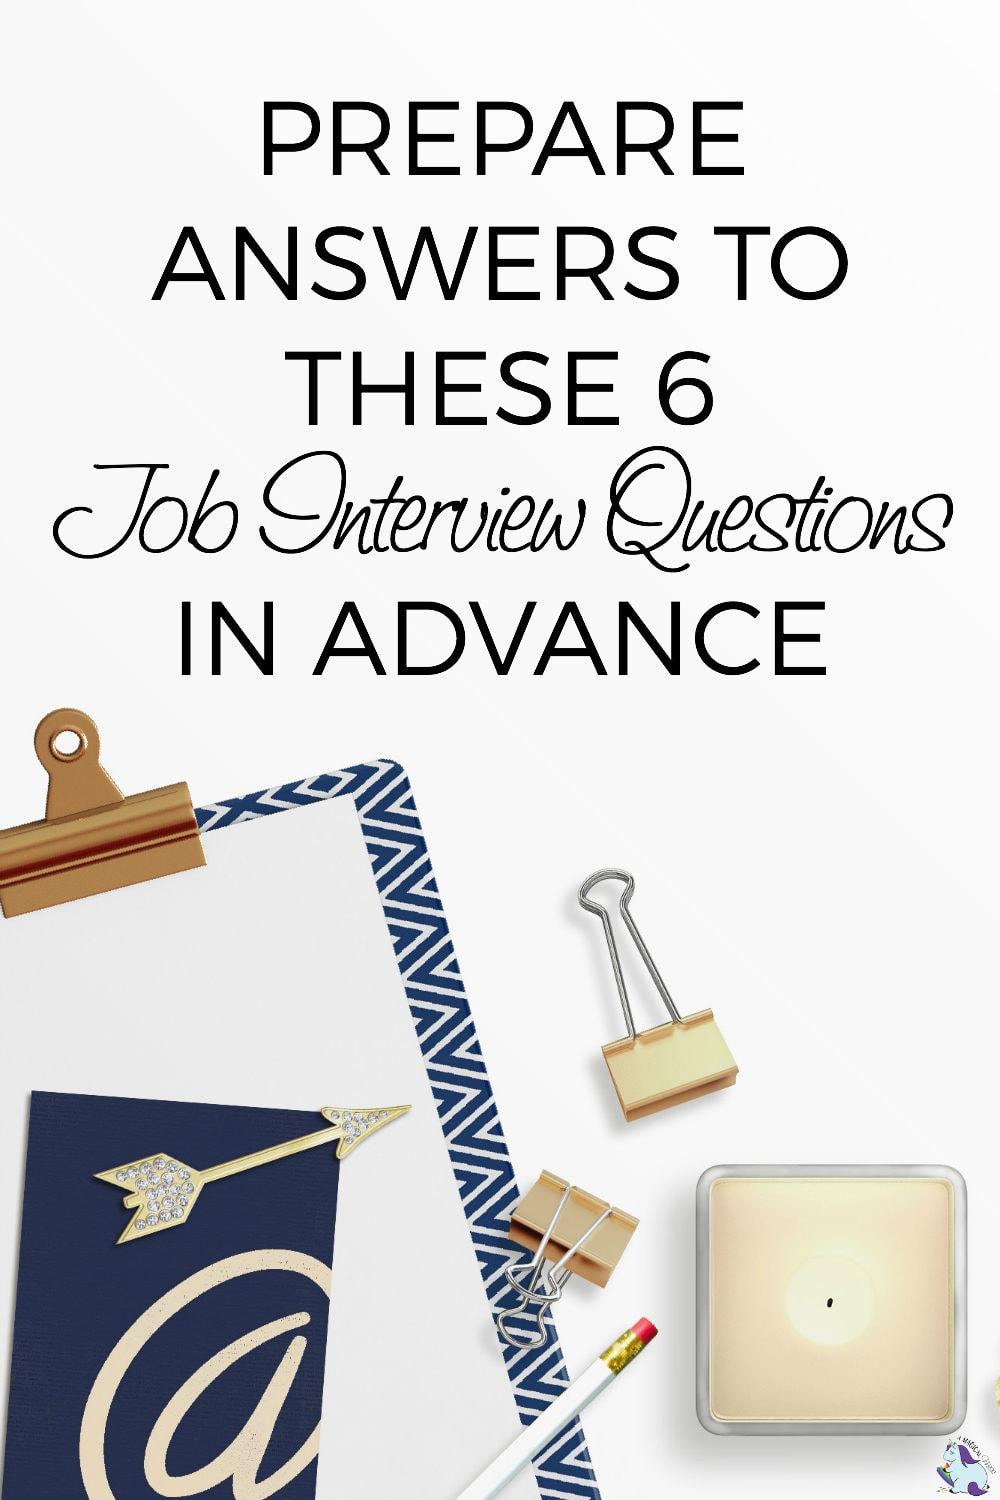 The Big 6 Job Interview Questions You'll Want to Prepare for in Advance